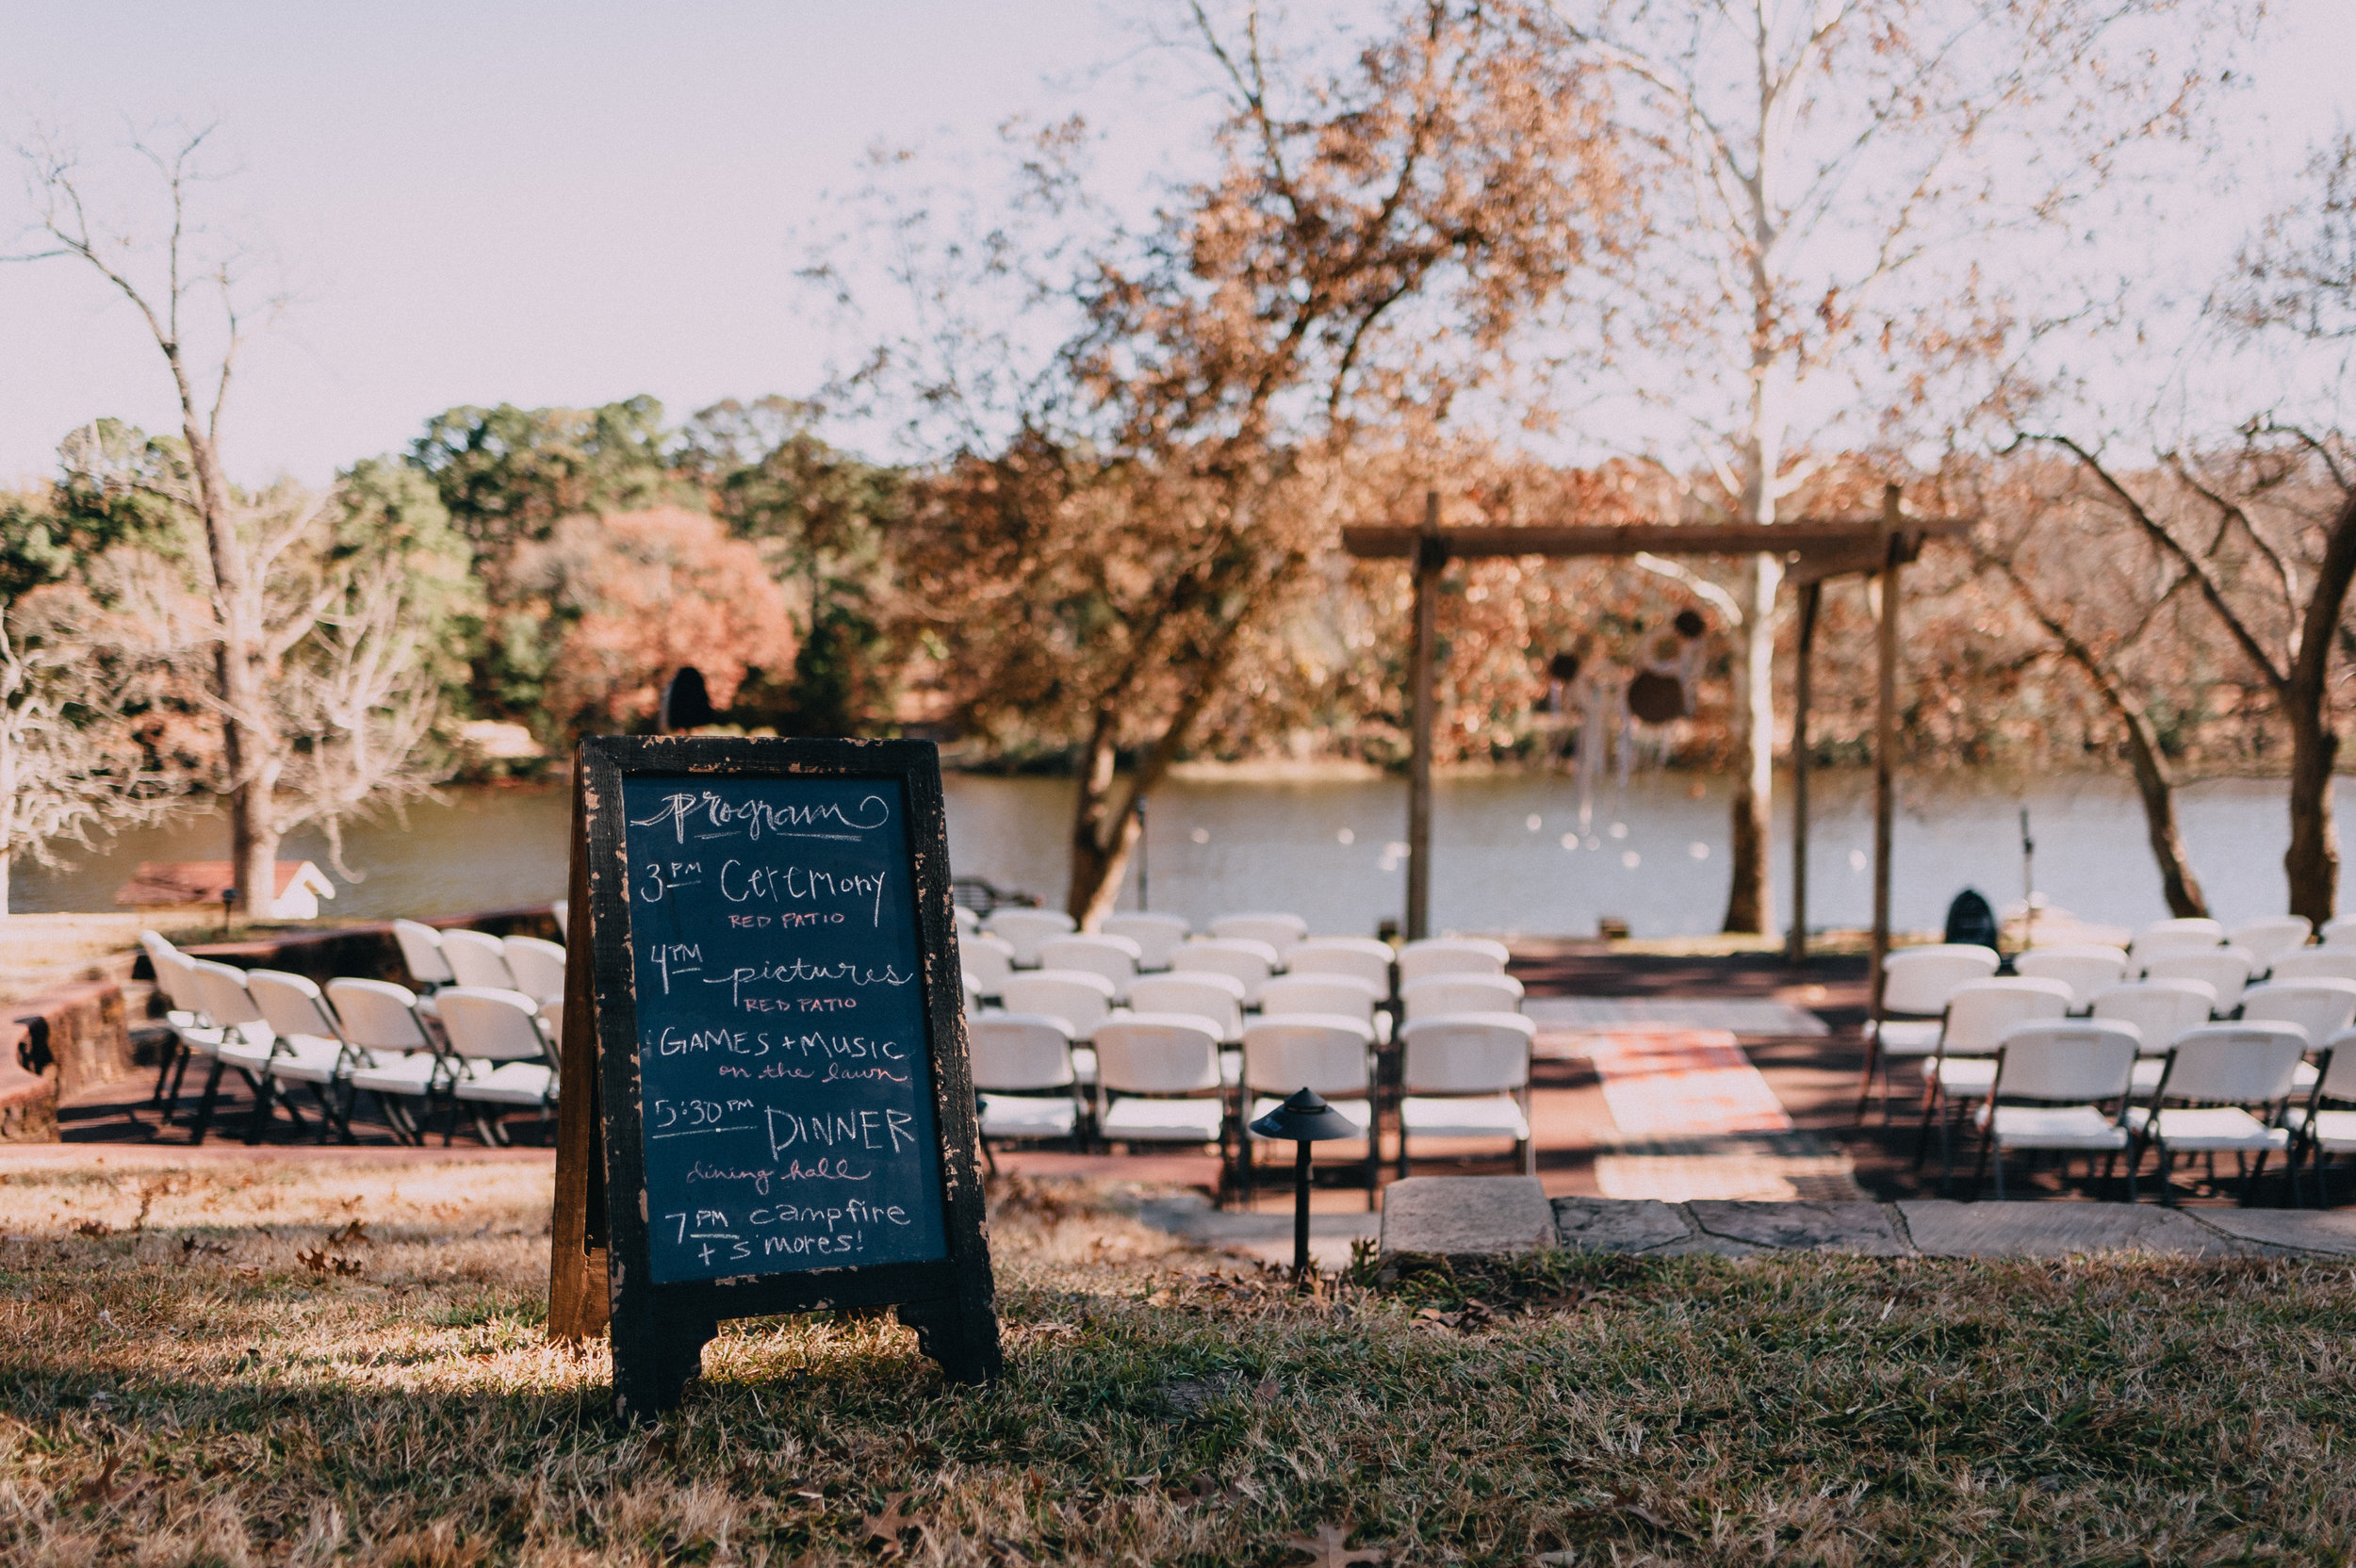 Weddings - More information on how we might host your dream wedding!